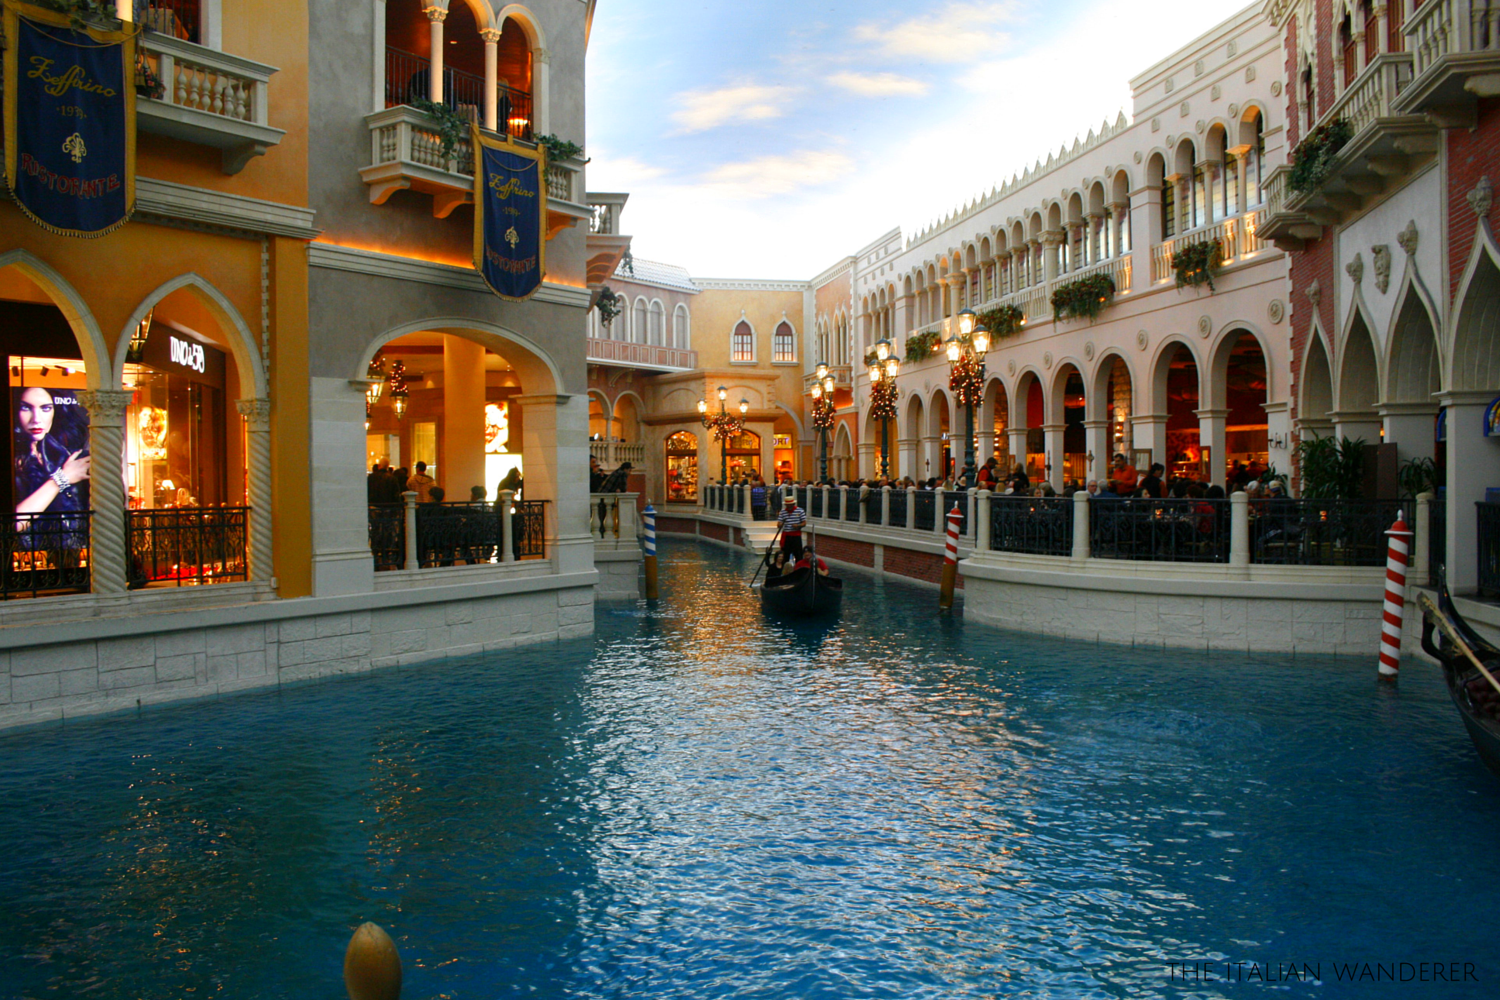 The canals of the Venetian Casino